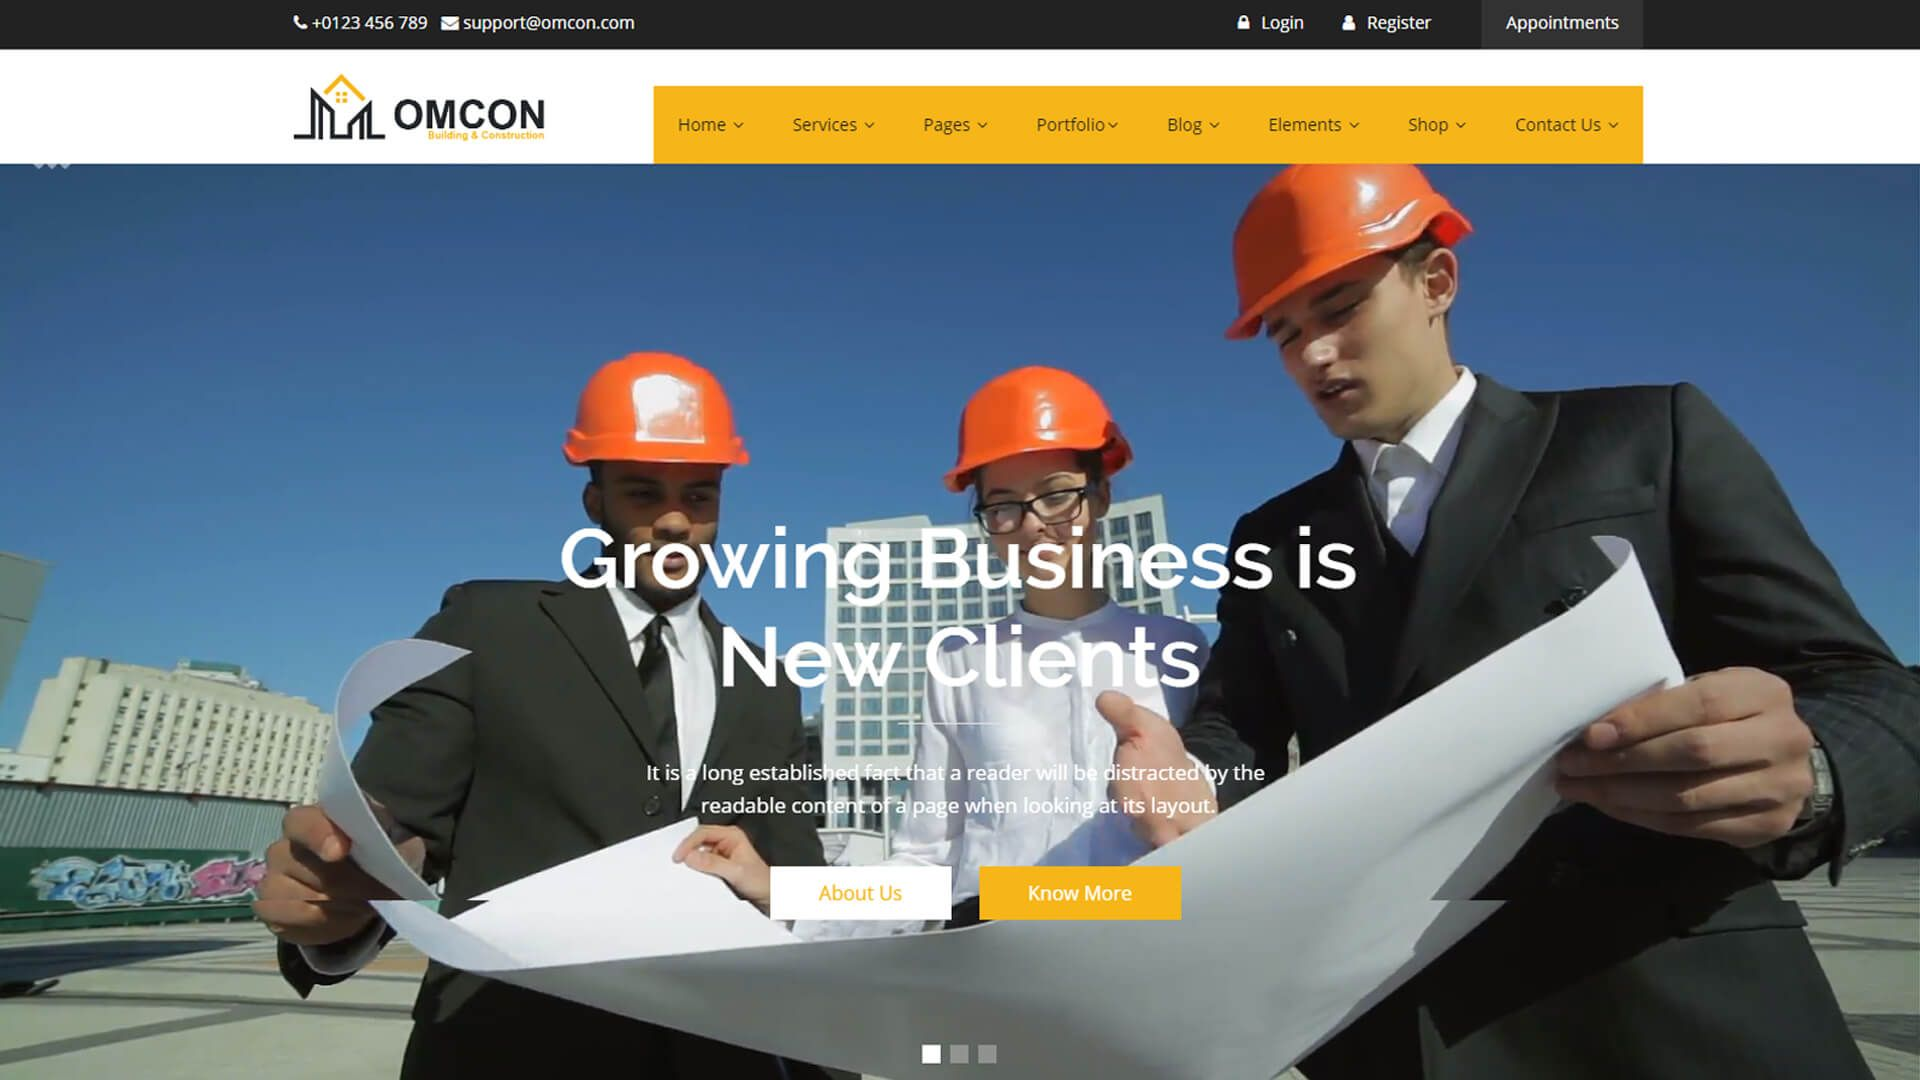 Hi, Take your construction business up the next level by